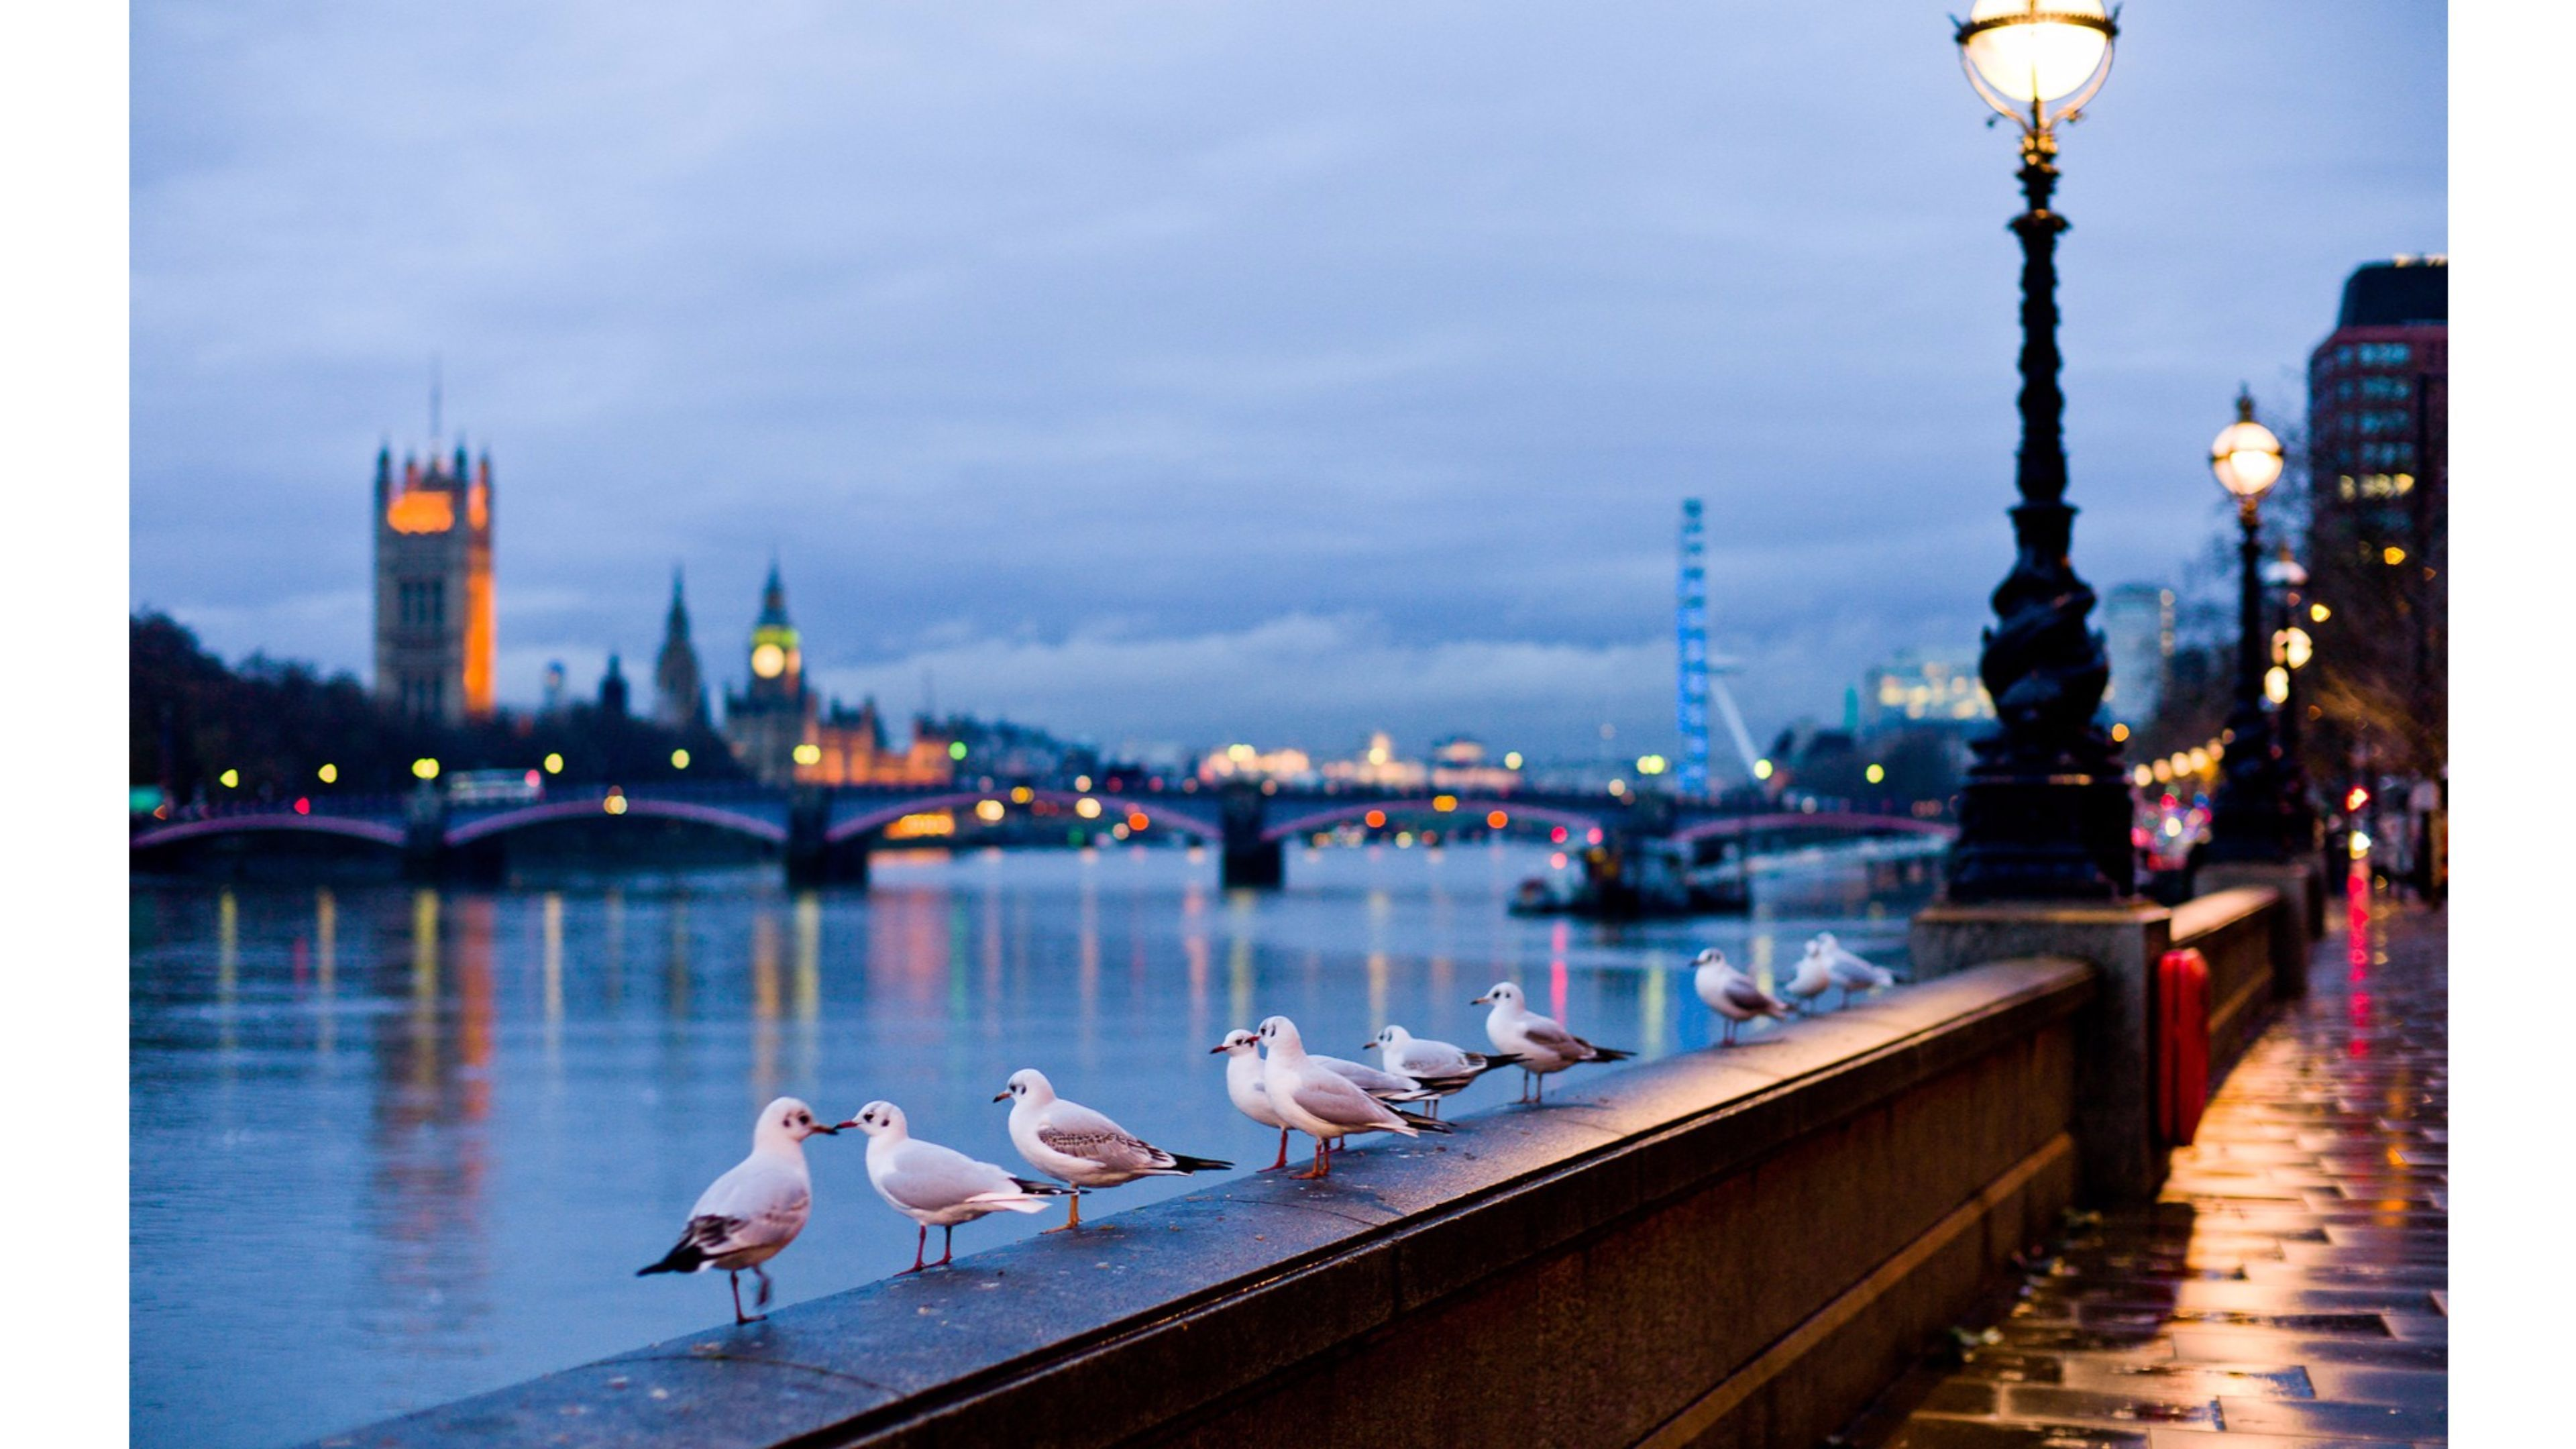 Cute Face Girl Wallpapers For Mobile Birds Love On Thames River London Hd Images